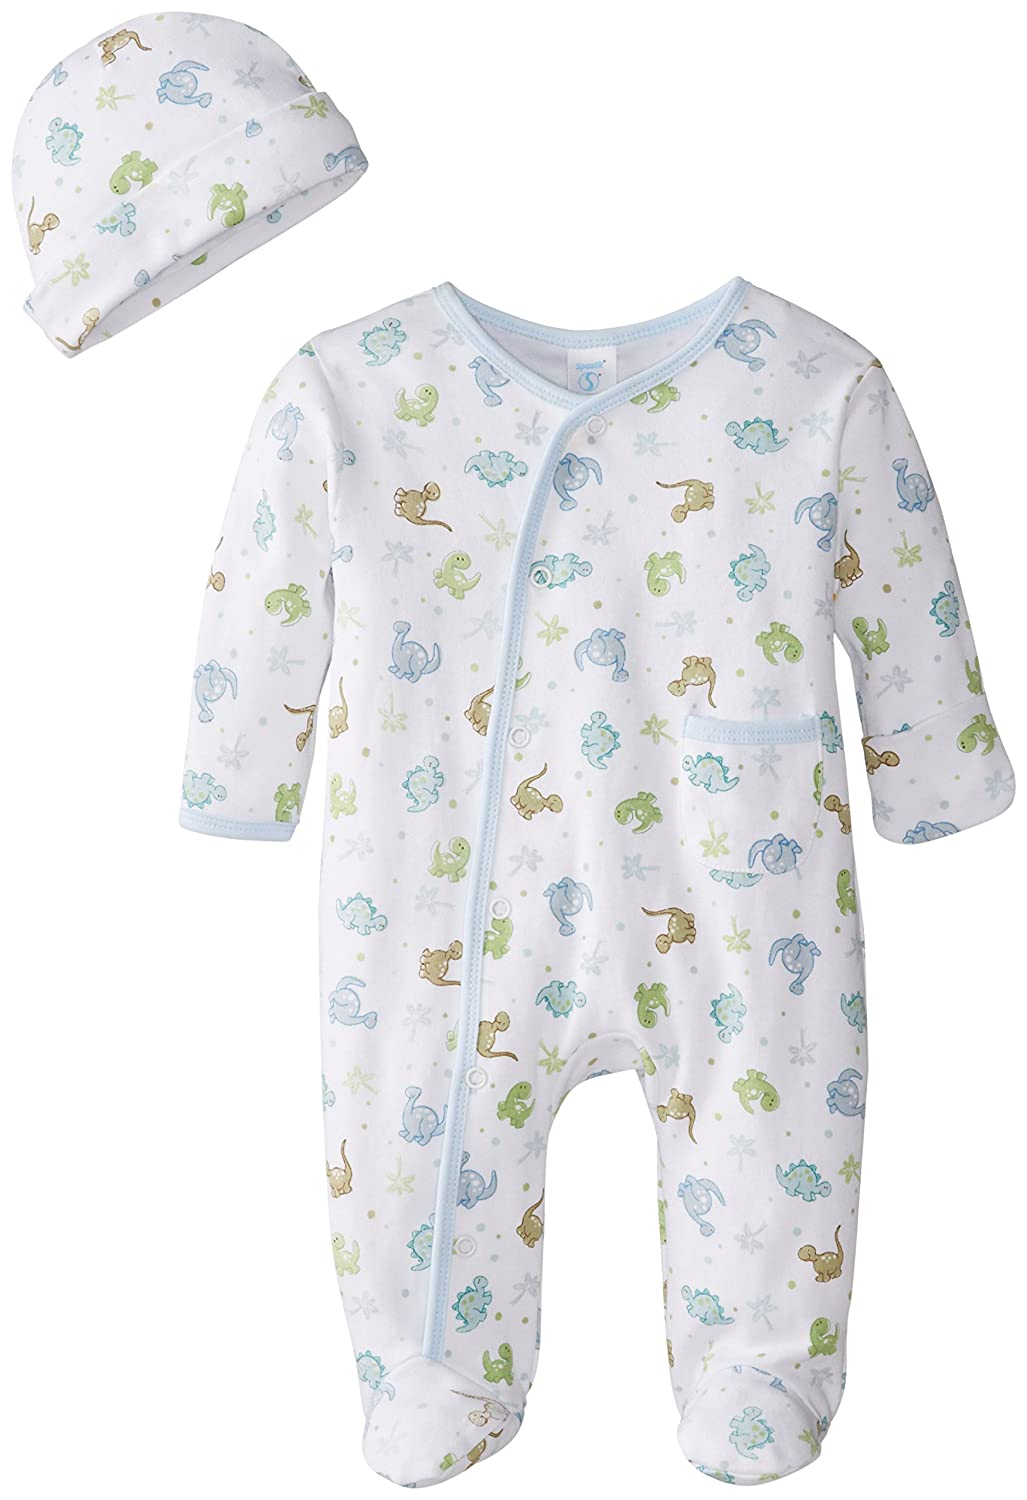 The Children's Place has the widest collection of newborn baby boy sleepwear & pajamas. Shop at the PLACE where big fashion meets little prices! My Place Rewards. Create An Account Check Point Balance Redeem Rewards Member Benefits. My Place Rewards Credit Card.